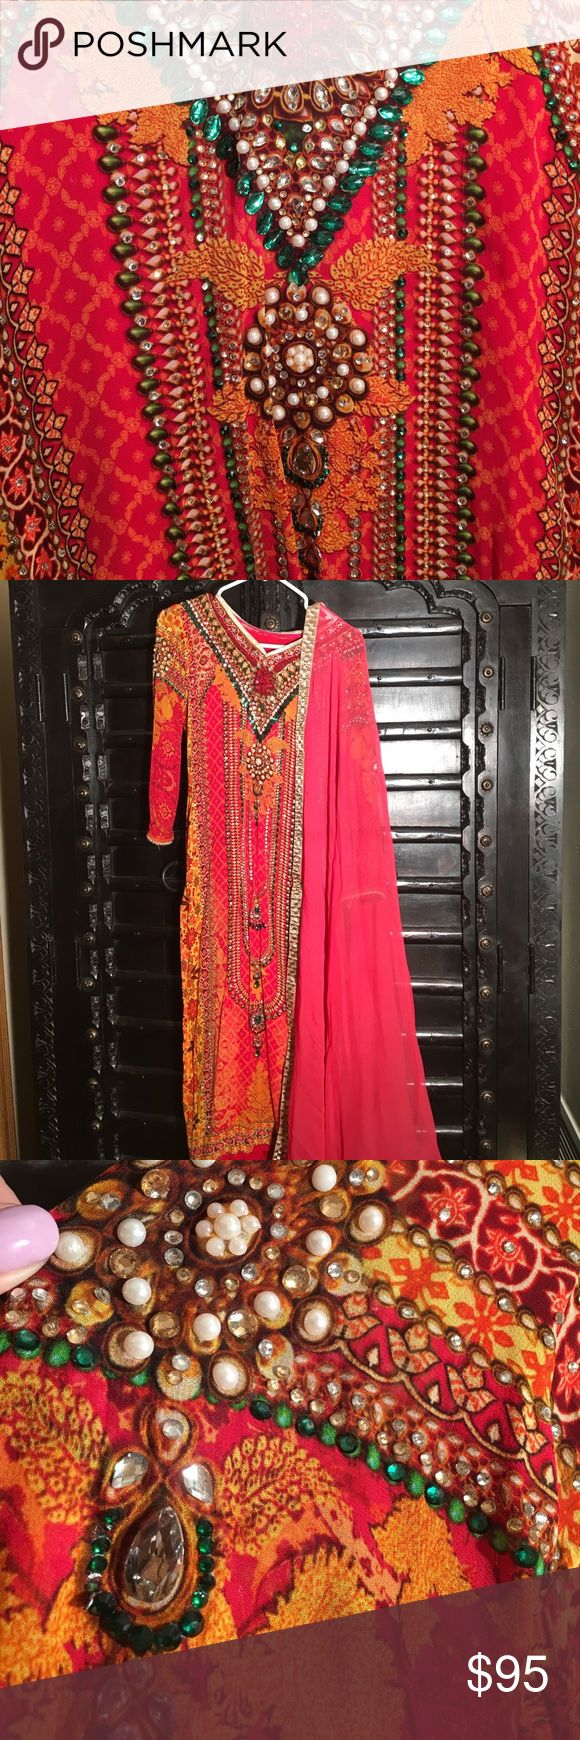 Churidar Indian punjabi suit Beautiful Punjabi suit with churidar pajama. Very colorful with blends of oranges, yellow, pink, and emerald accents! Fit for women's size 6 in US dresses. Dresses Wedding